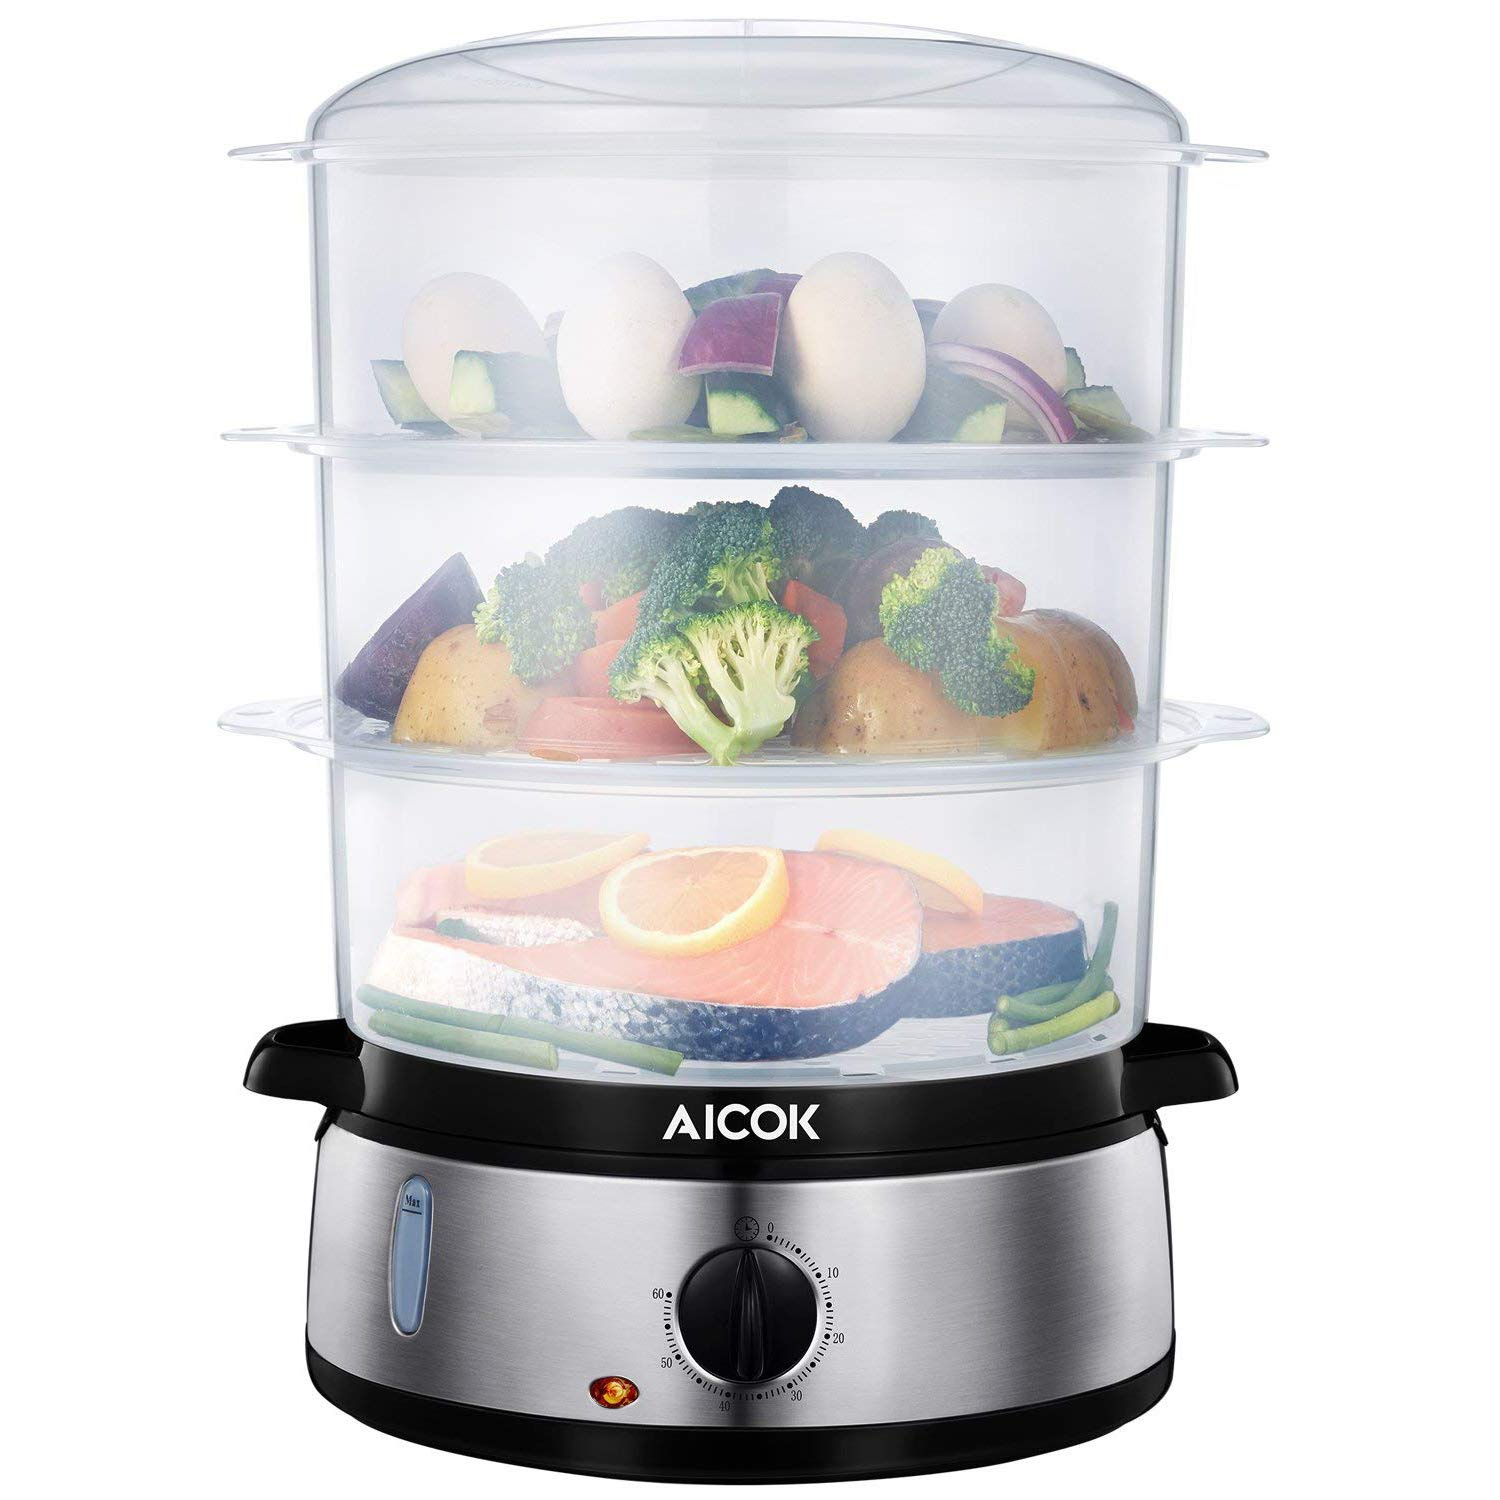 AICOK Food Steamer 9.5 Quart Vegetable Steamer, 800W Fast Heating Electric Steamer Including 3 Tier Stackable Baskets with Rice Bowl, Stainless Steel